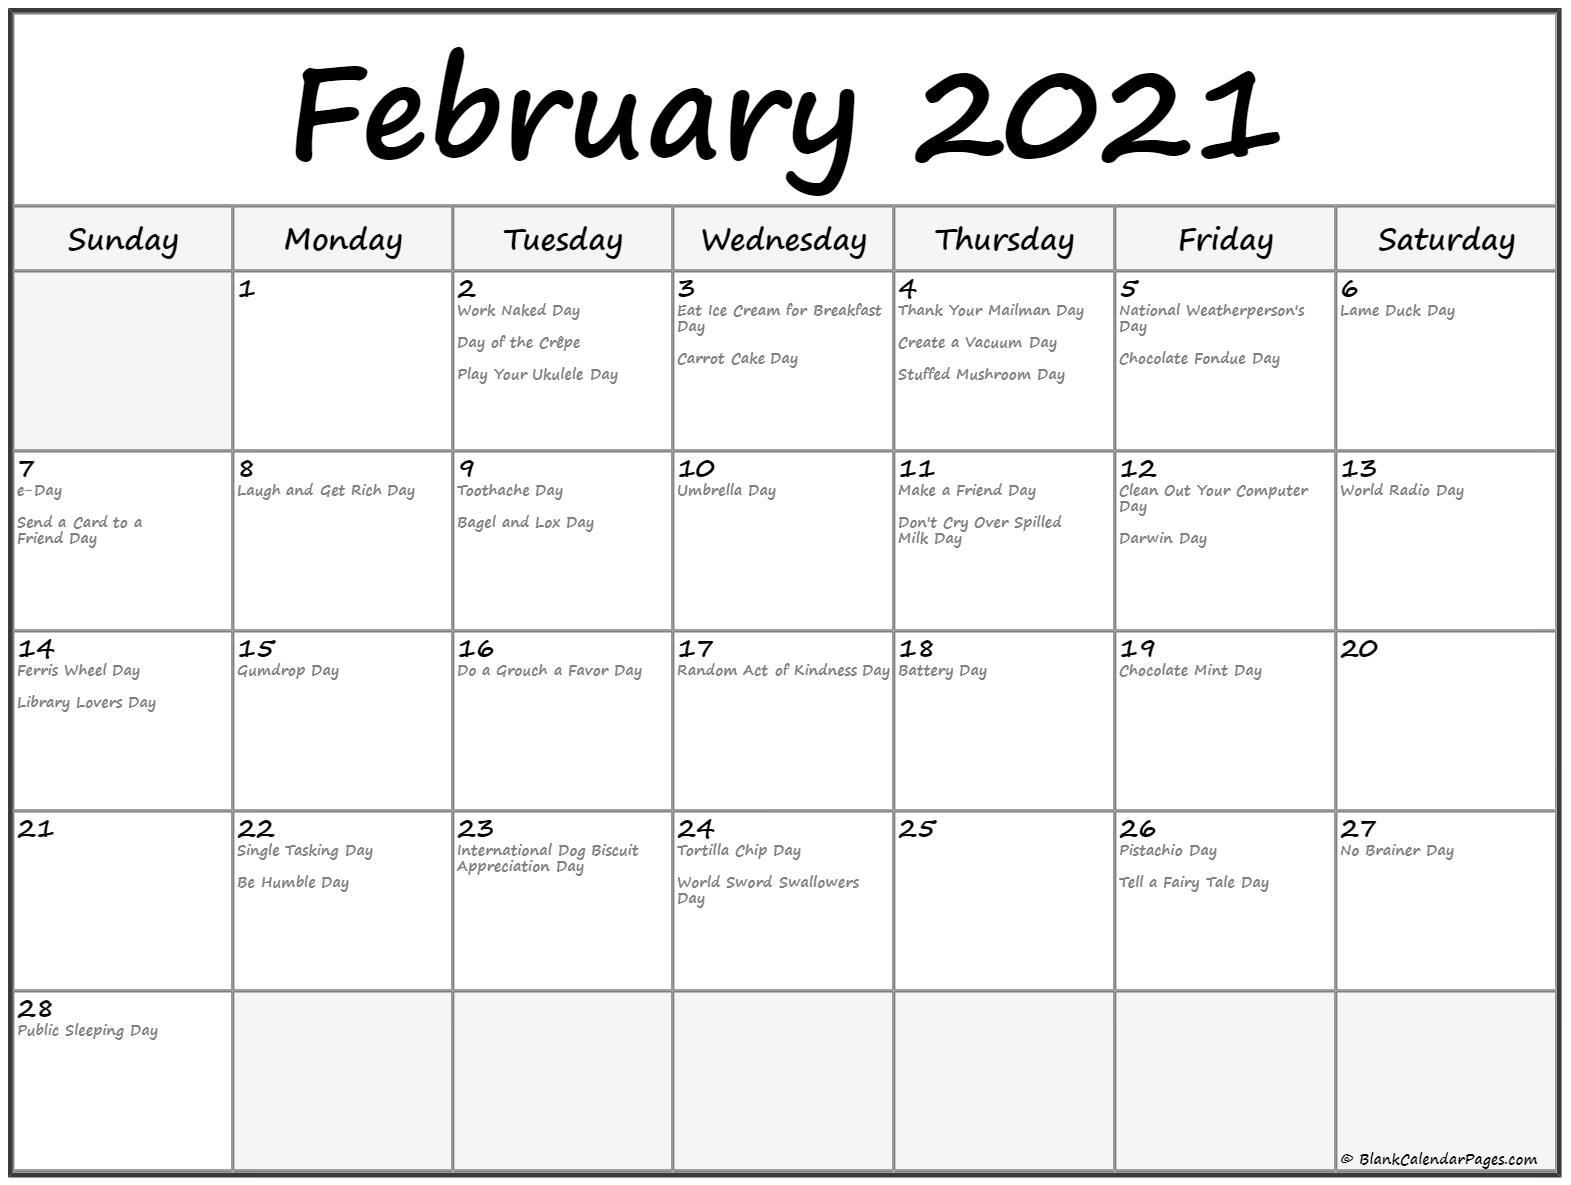 February 2021 Days To Celebrate / Includes 2021 Observances